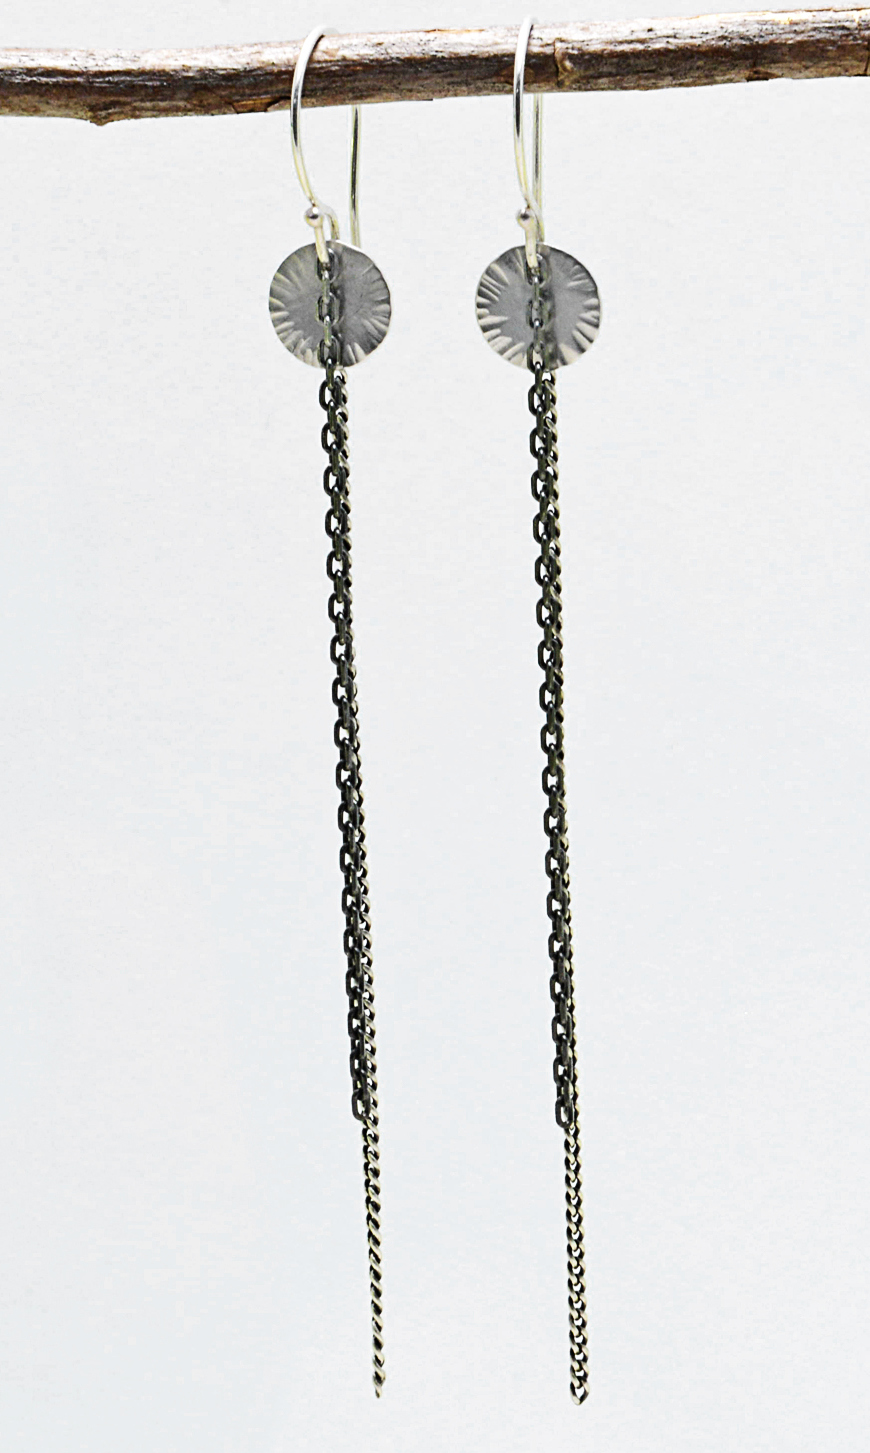 sequin earrings with chains